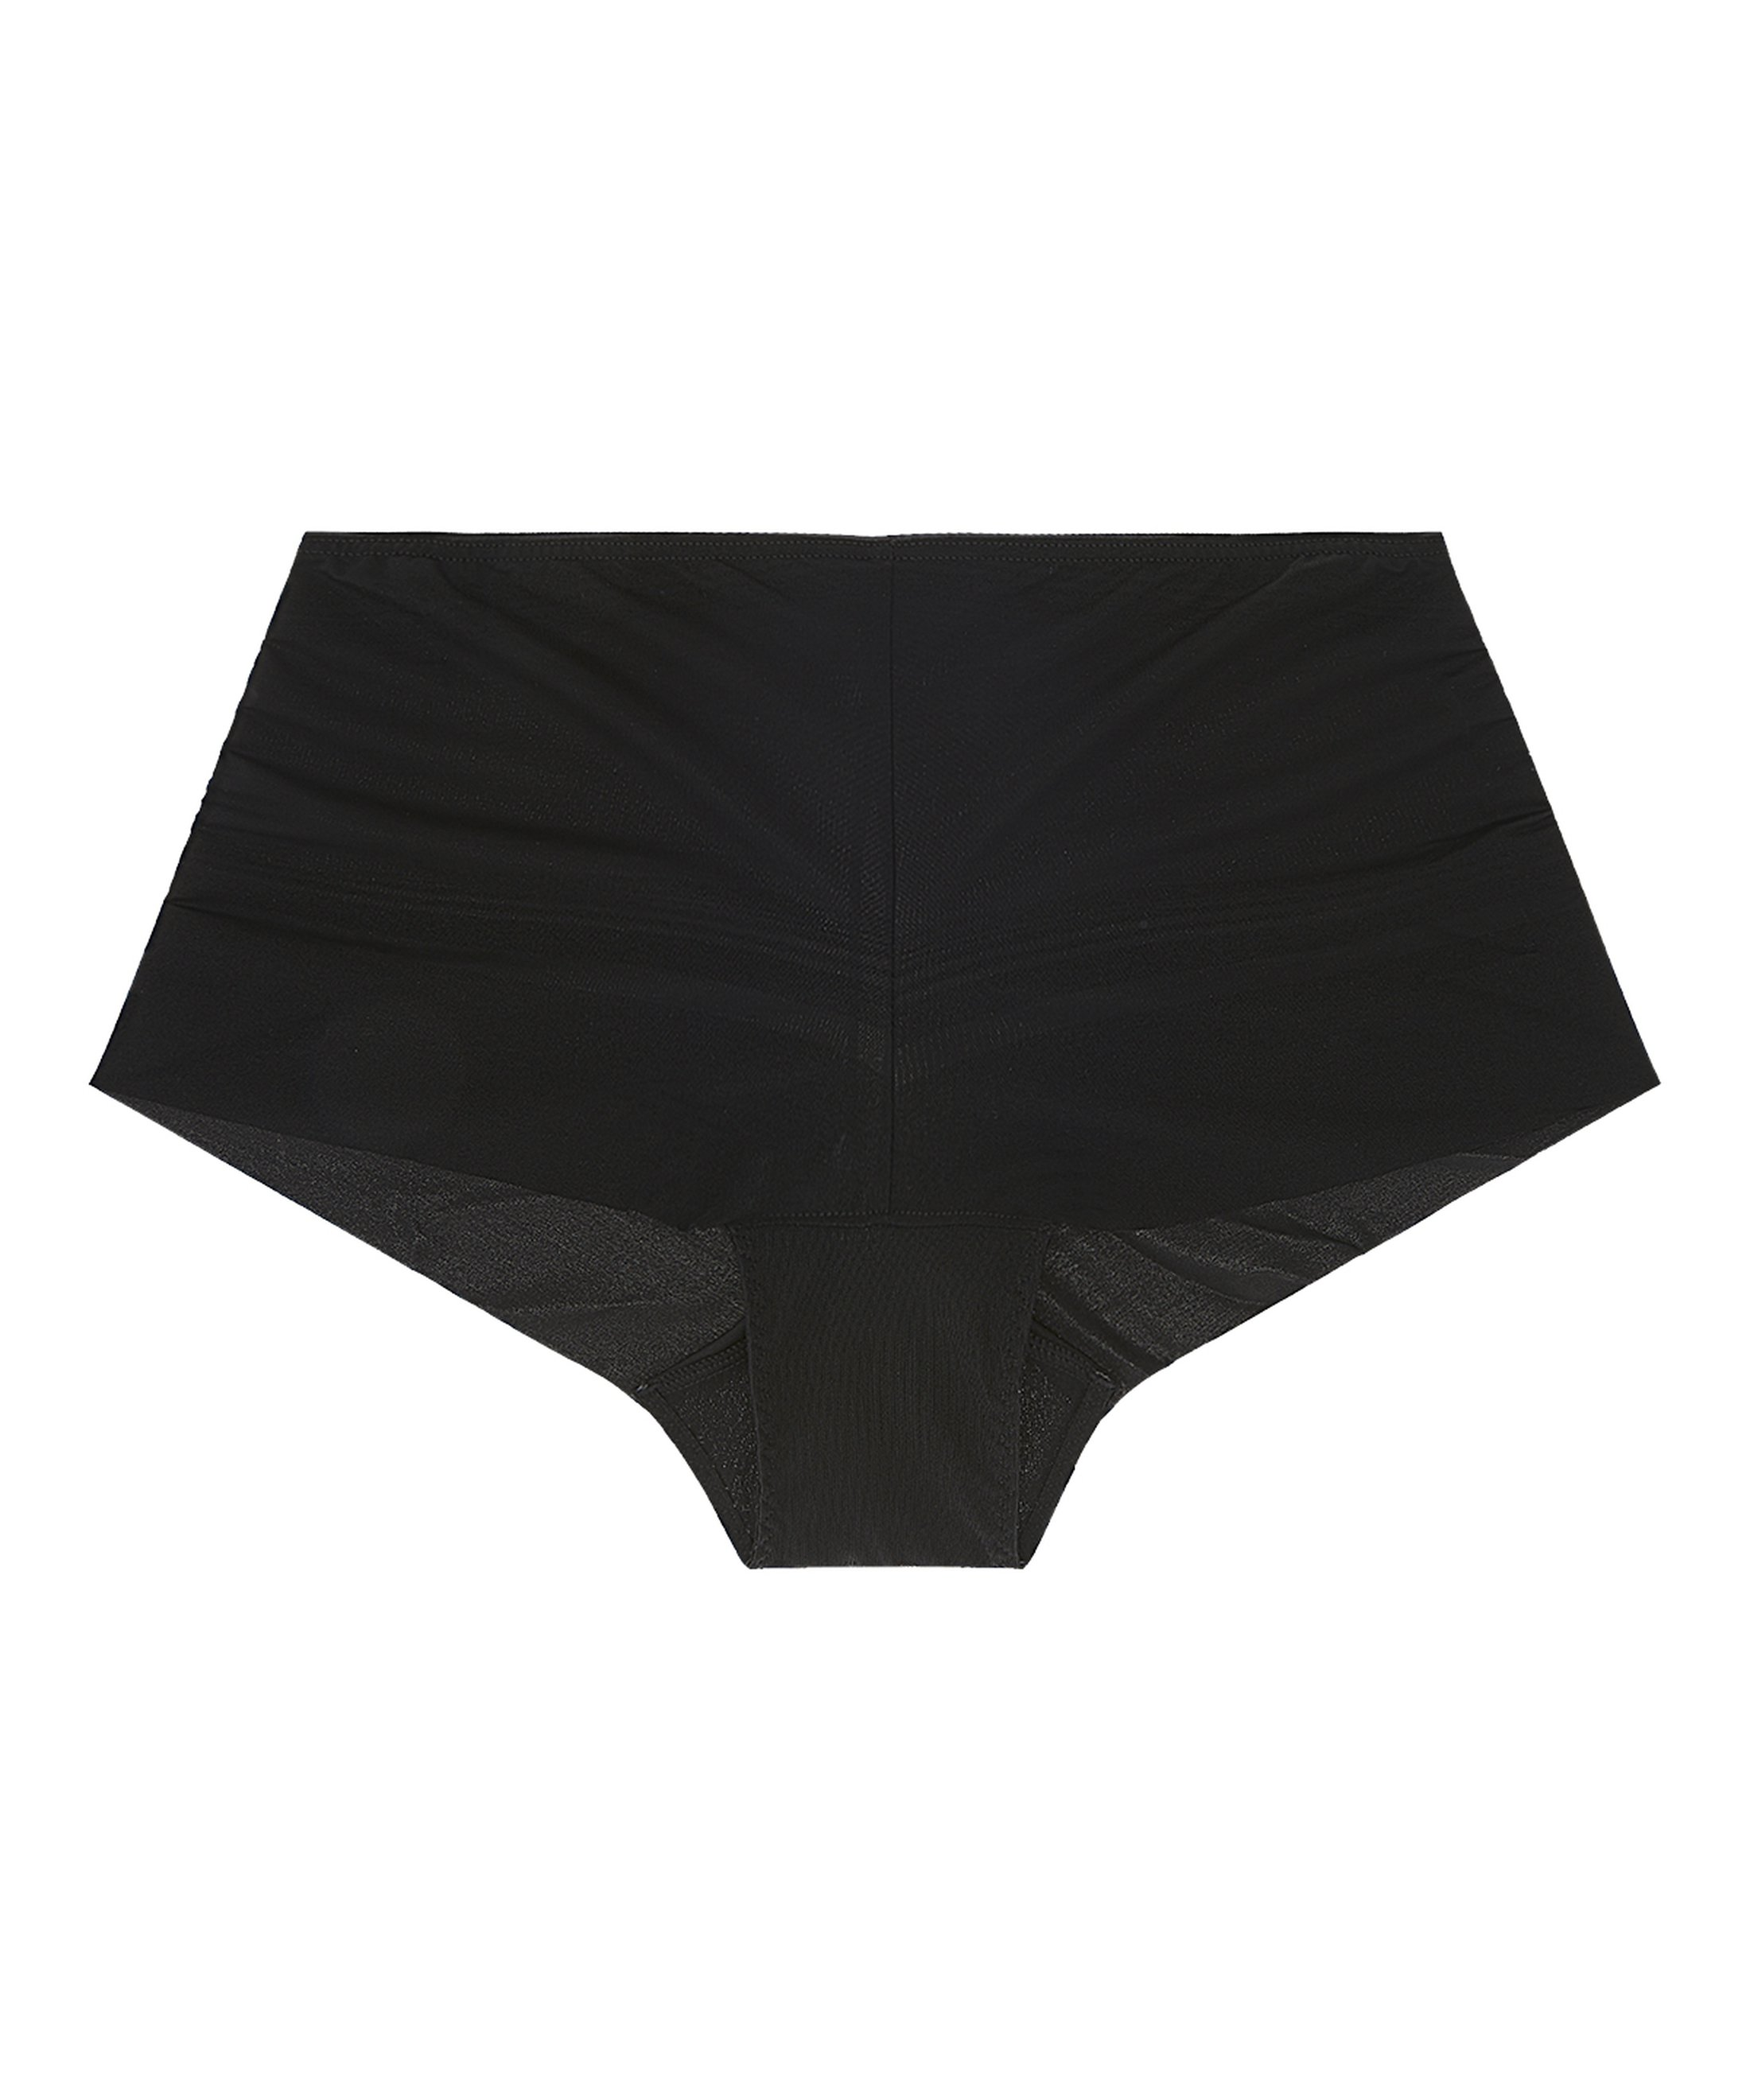 BEAUTY SCULPT Shorty St-Tropez Noir | Aubade